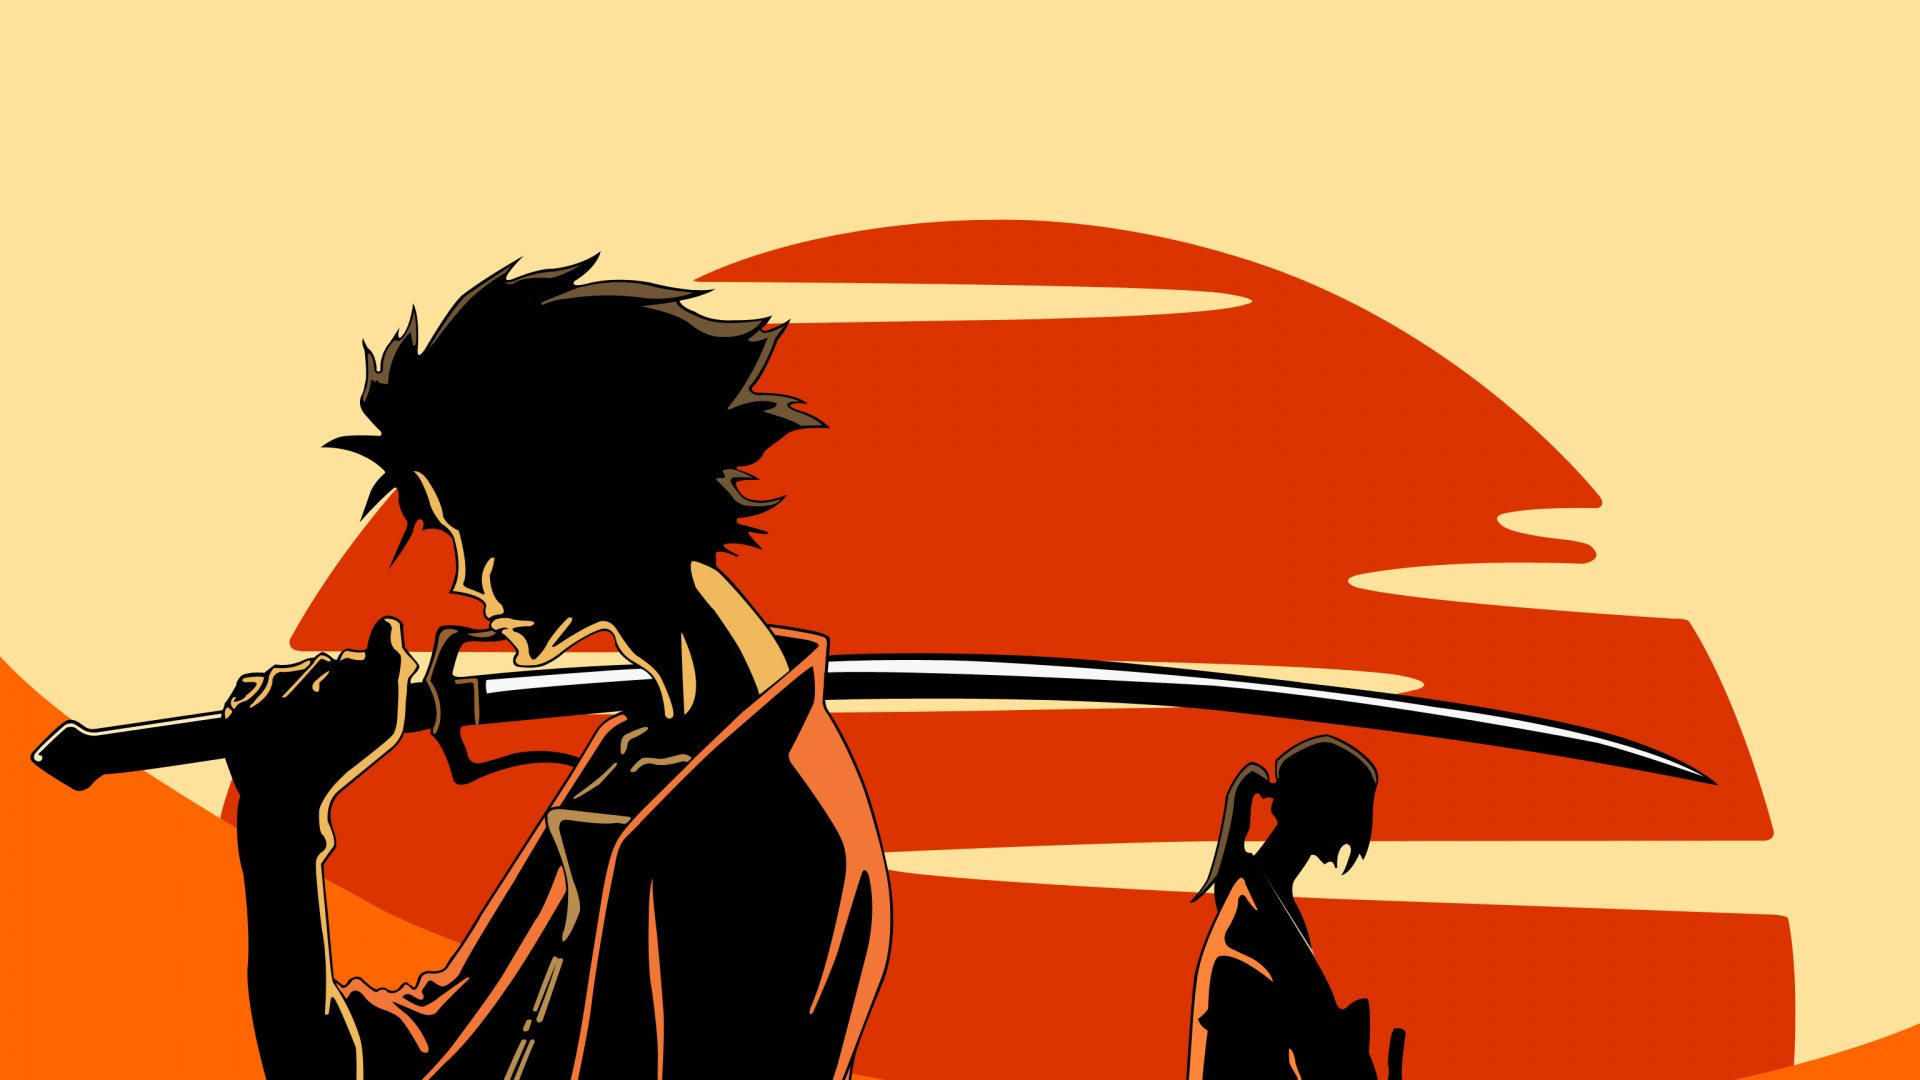 Badass-Samurai-Champloo-HD-From-Gallsource-com-wallpaper-wpc9002554